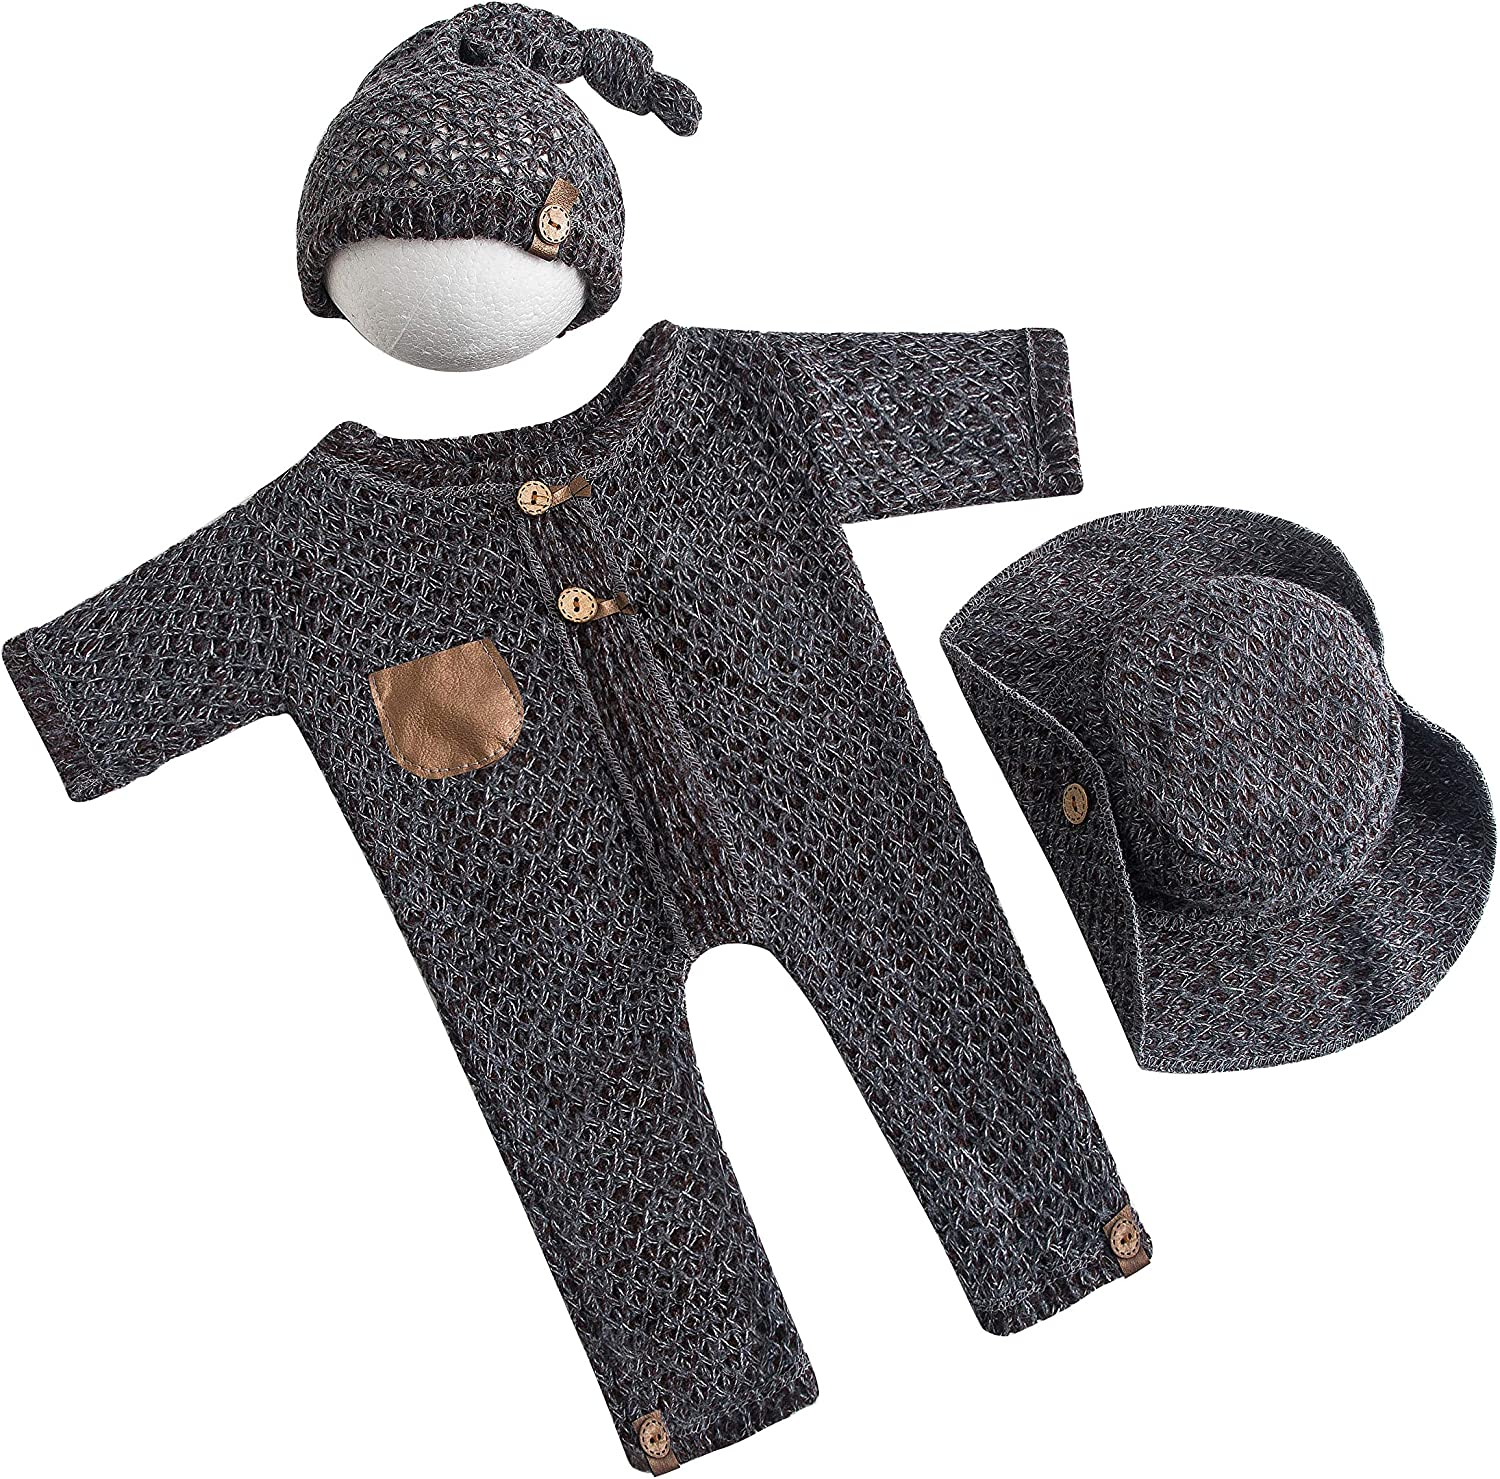 Newborn Photo 5 popular Props Outfits Baby NEW before selling ☆ Outfit Boy Knit Phot Prop